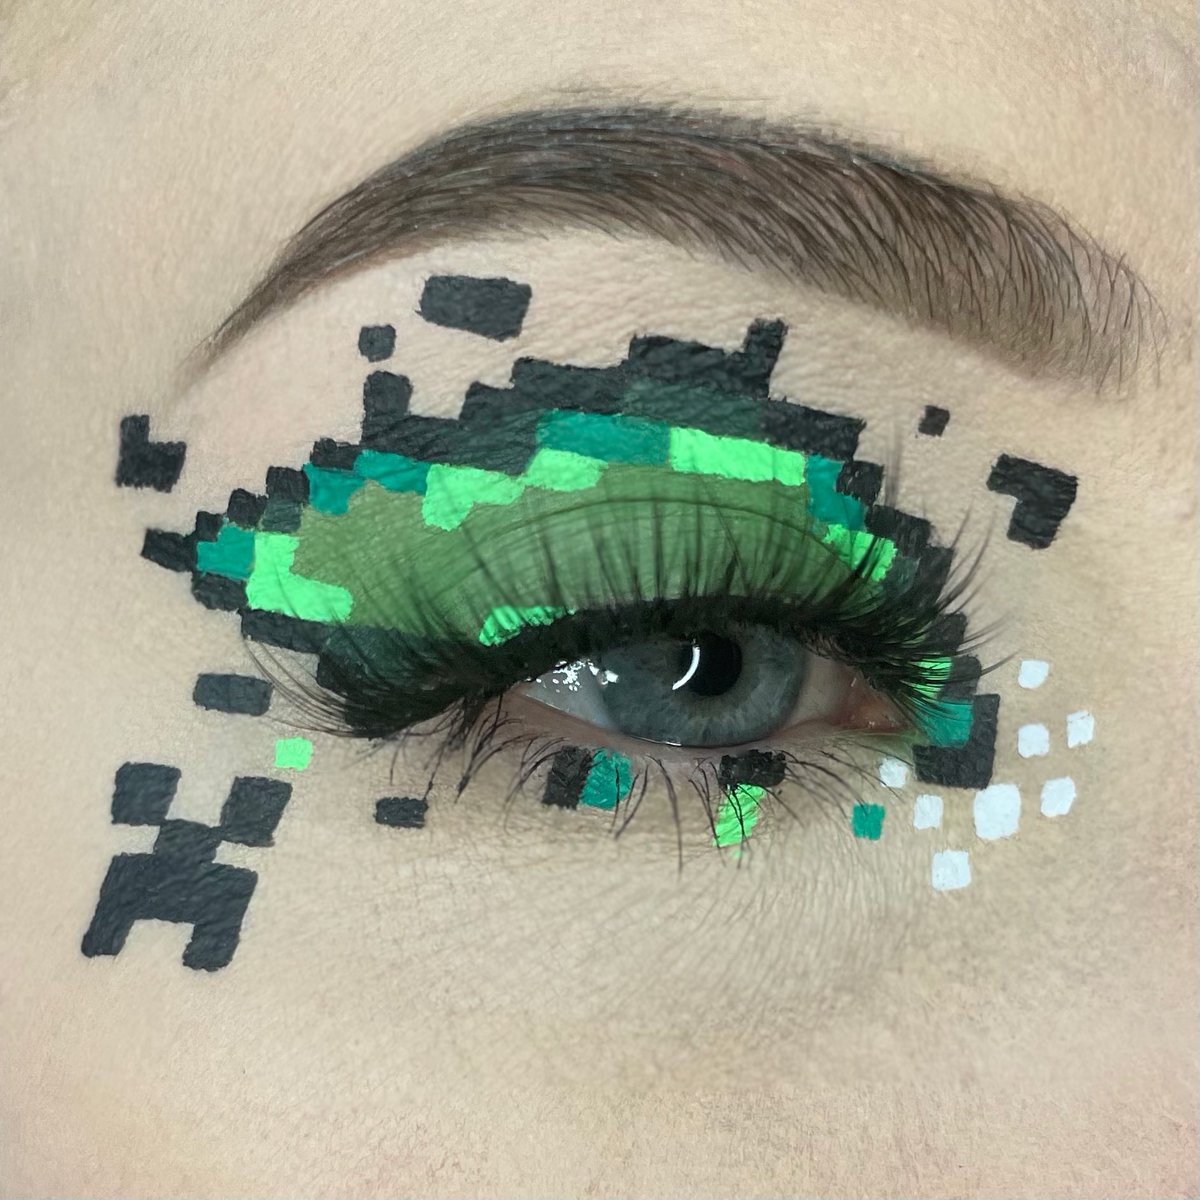 Had to do a Minecraft moment too 🥰💚 Using @SuvaBeauty hydra liners 💚 #makeup #makeupartist #minecraft #pixelart #eyelook #like #rt #support